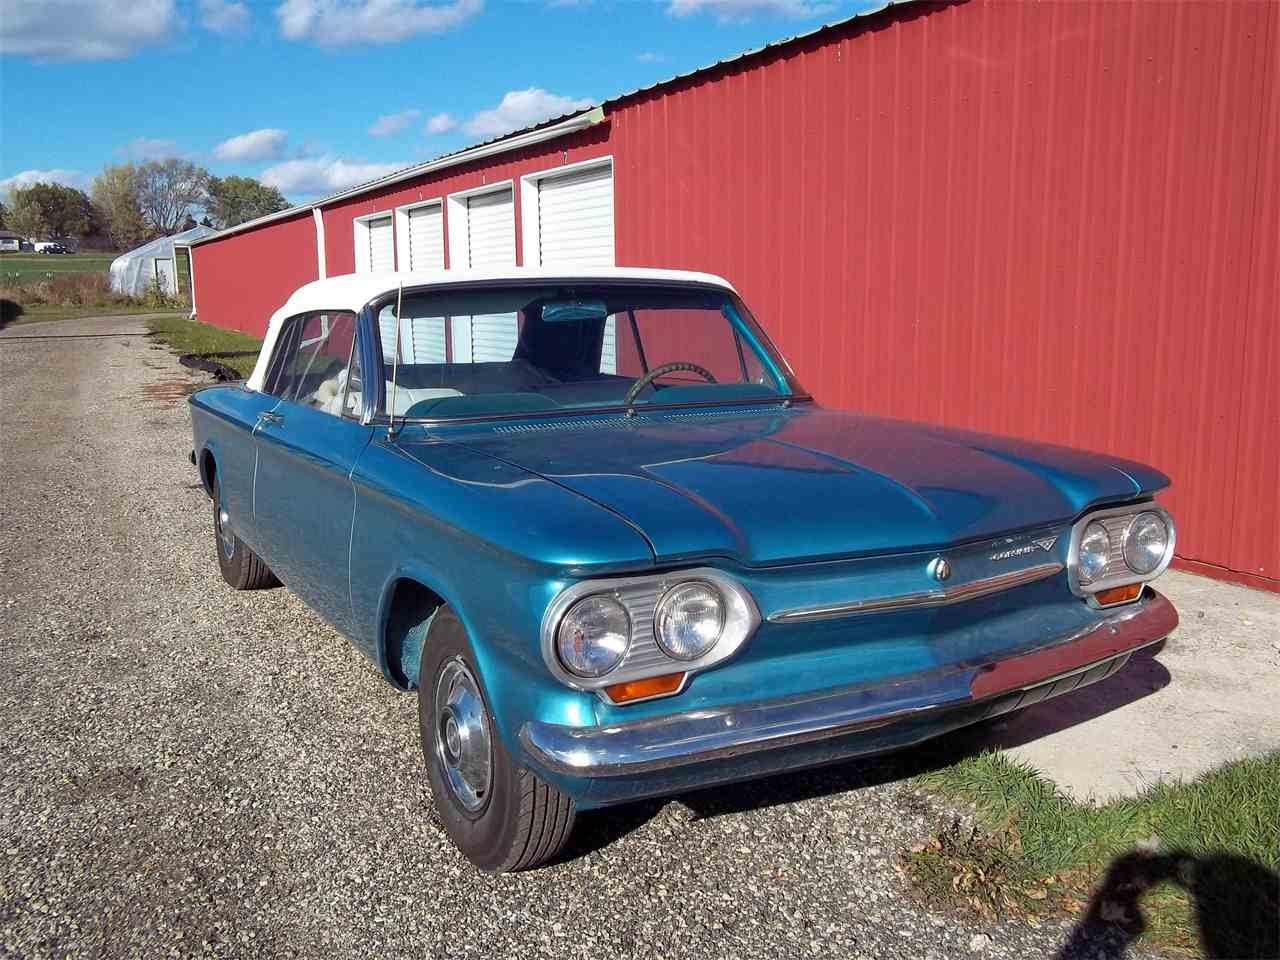 All Chevy chevy corvair monza : 1963 Chevrolet Corvair Monza for Sale | ClassicCars.com | CC-983272